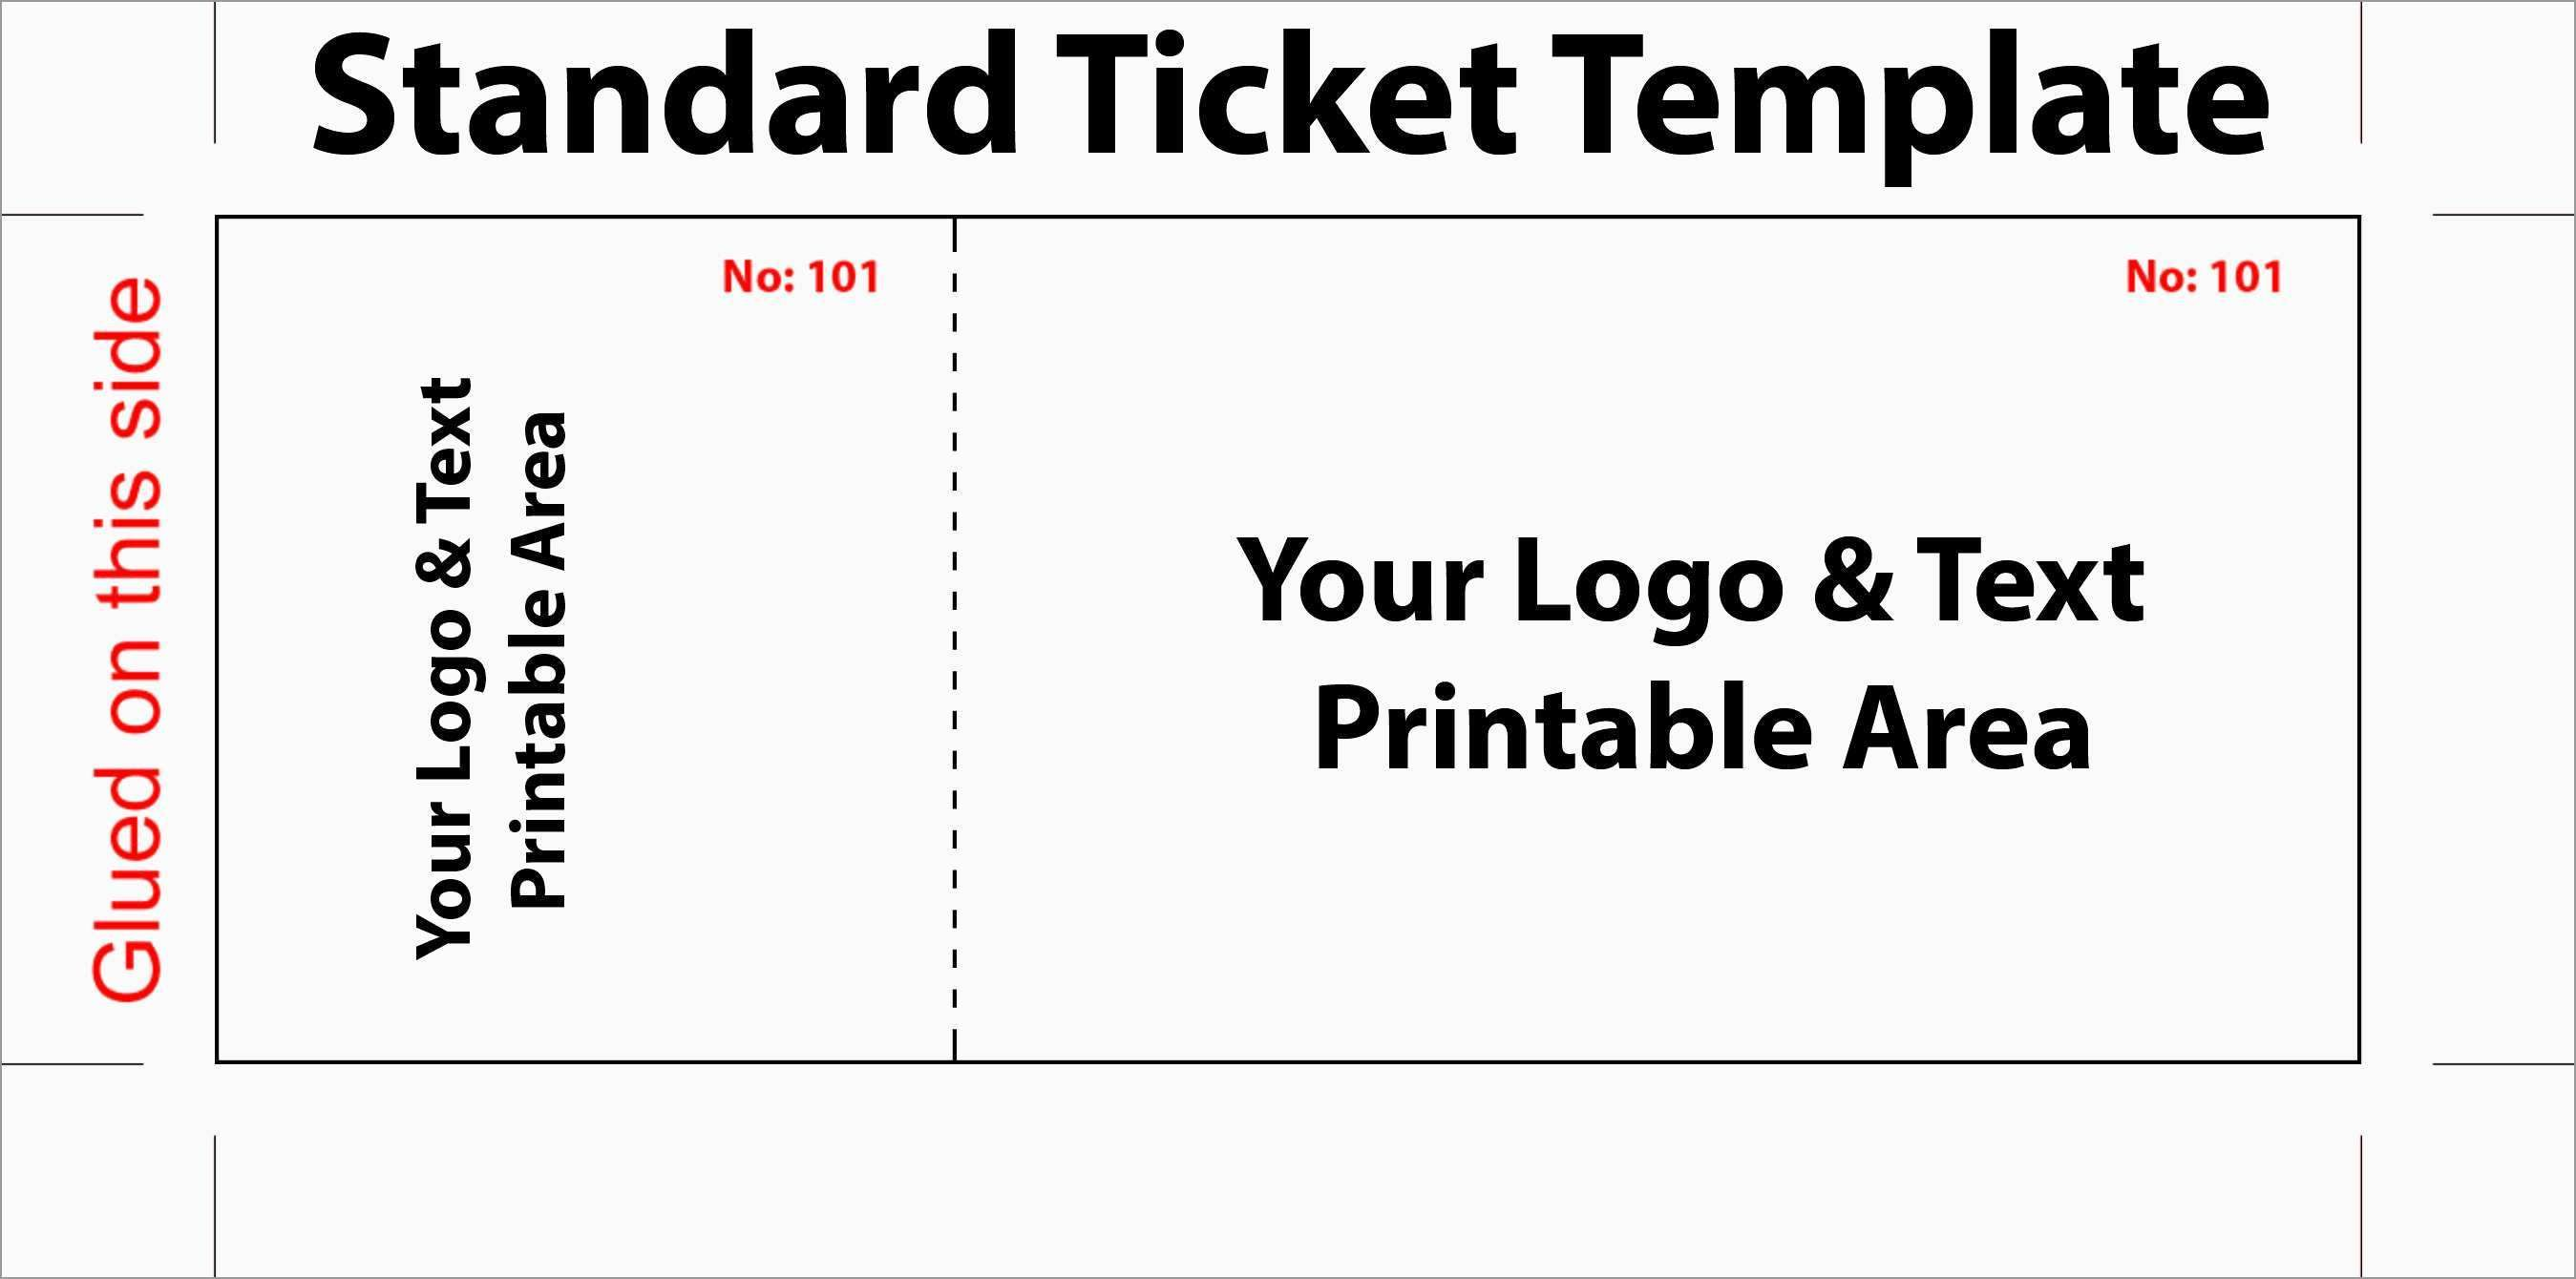 Ticket Template Louiesportsmouth Com In 2021 Raffle Tickets Template Ticket Template Free Printables Ticket Template Printable Free event ticket template download